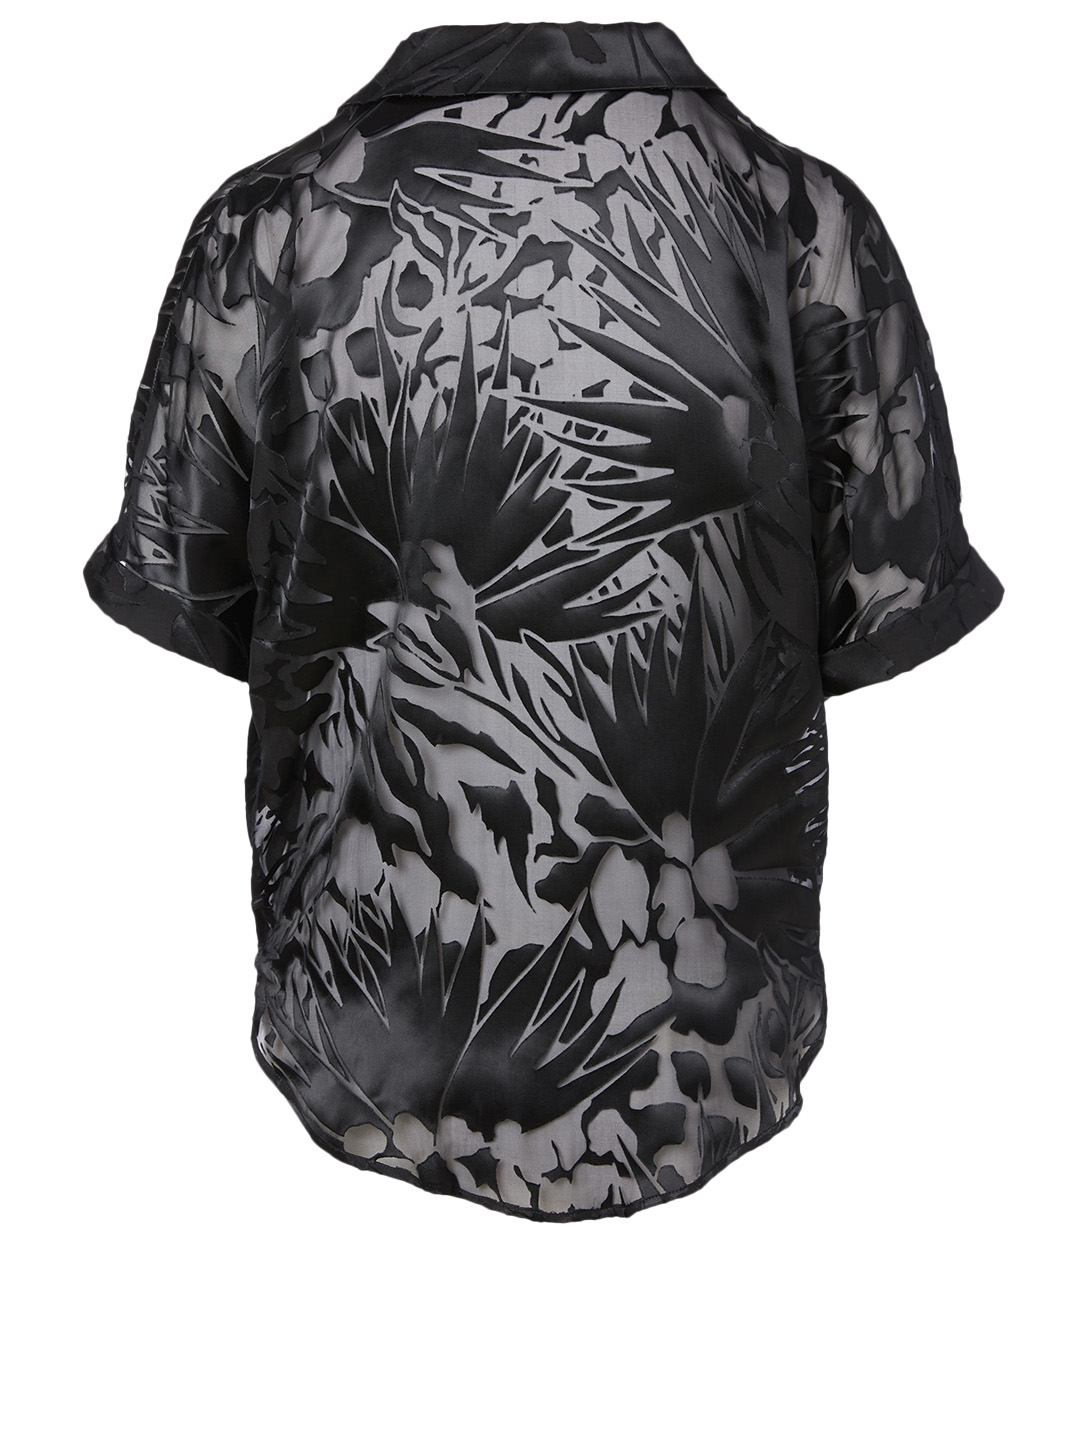 SAINT LAURENT Silk-Blend Top In Jungle Print Women's Black